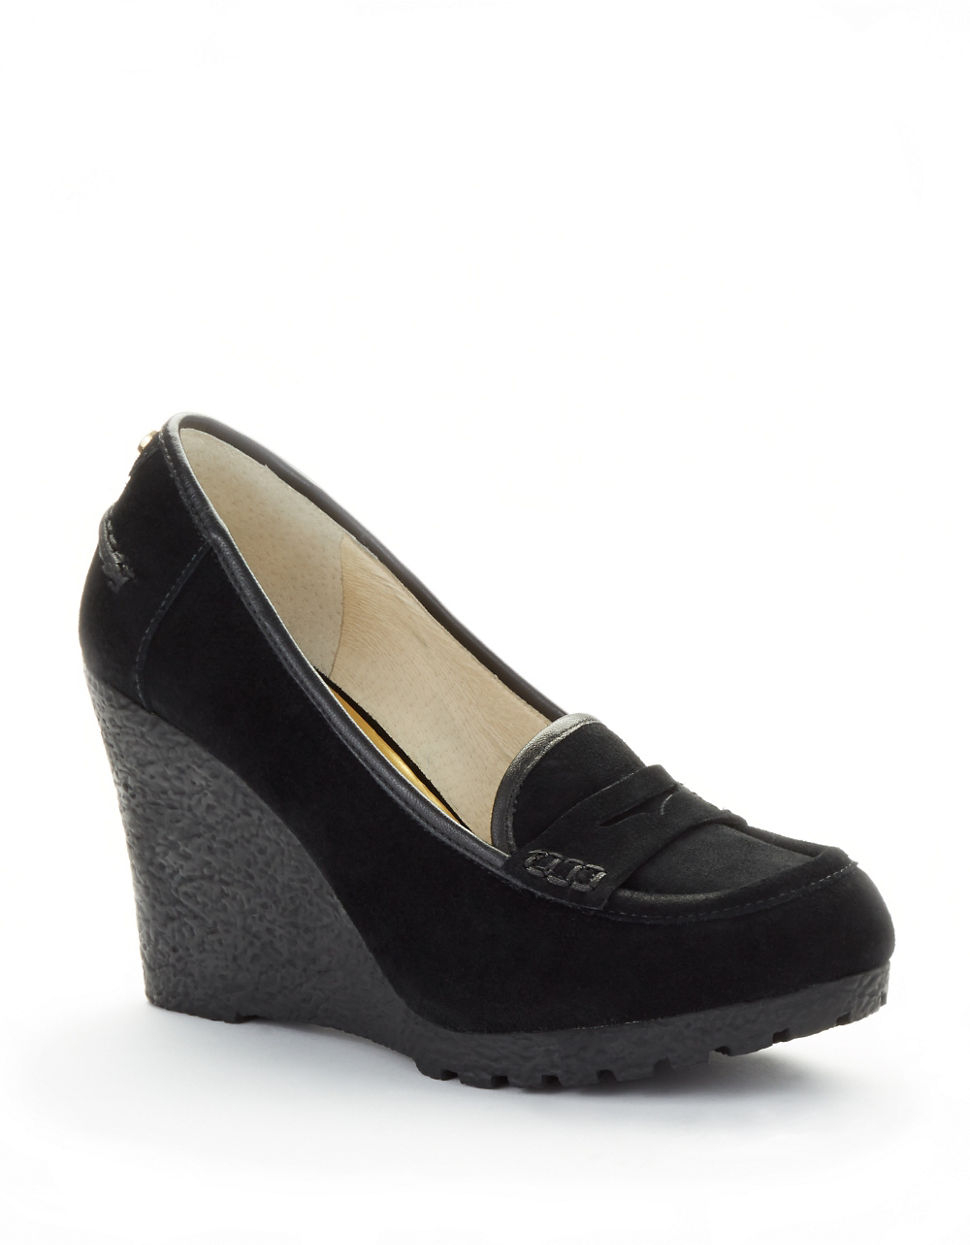 $ - Women's Shoes Cowhide Spring / Fall Comfort Loafers & Slip-Ons Wedge Heel Black / Red Shop for cheap Women's Slip-Ons & Loafers online? Buy at .